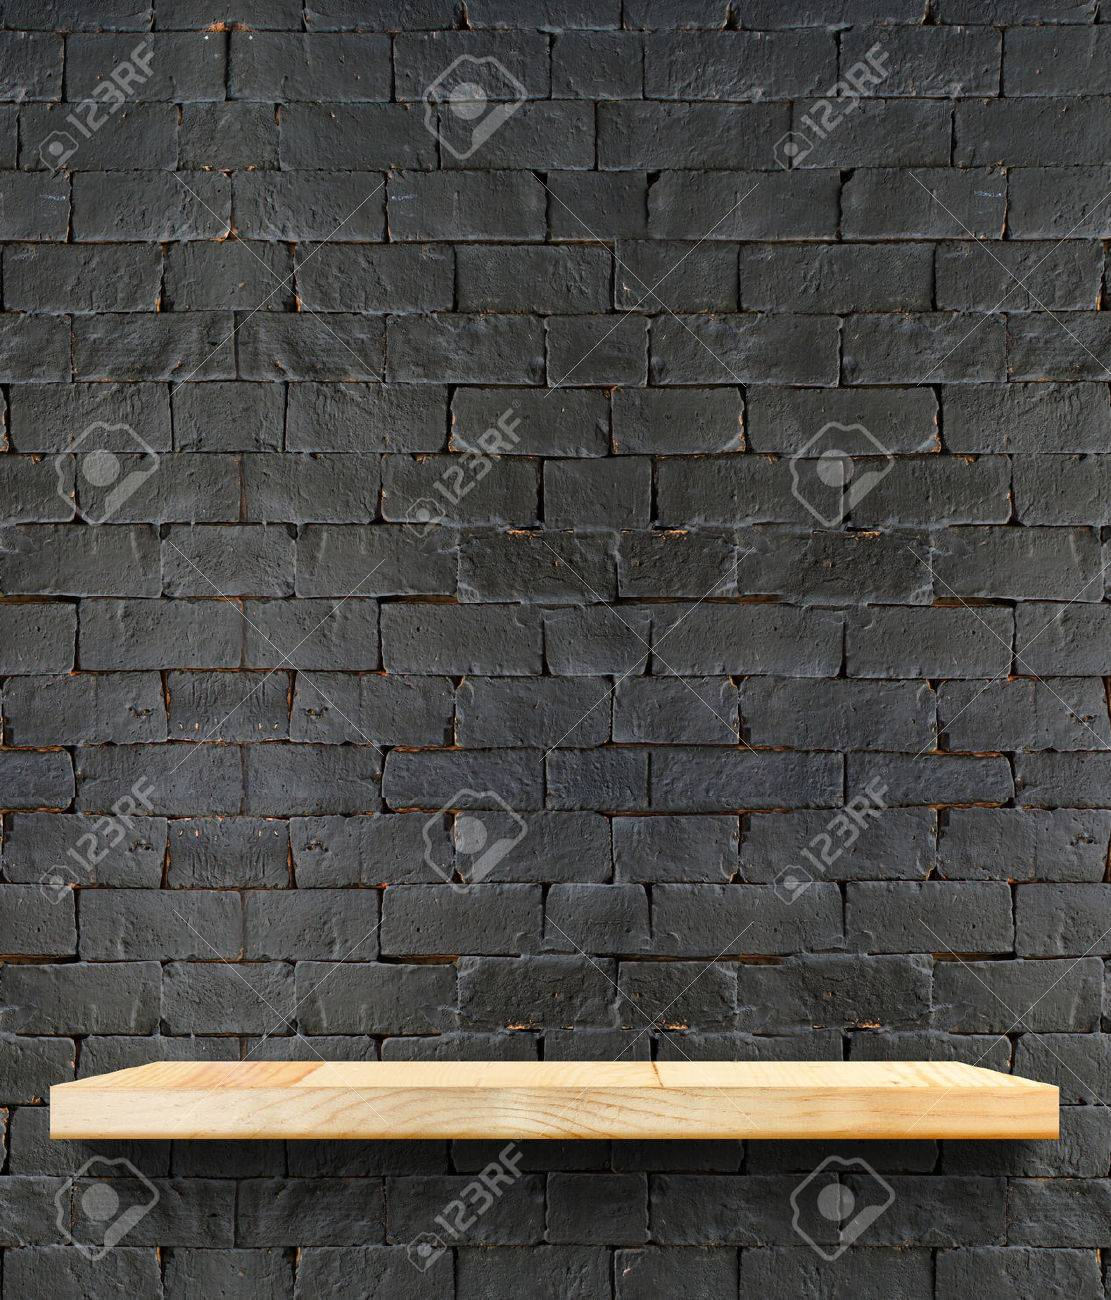 Plain wood table with hipster brick wall background stock photo - Wood Table Perspective Empty Wooden Shelf At Black Brick Wall Template Mock Up For